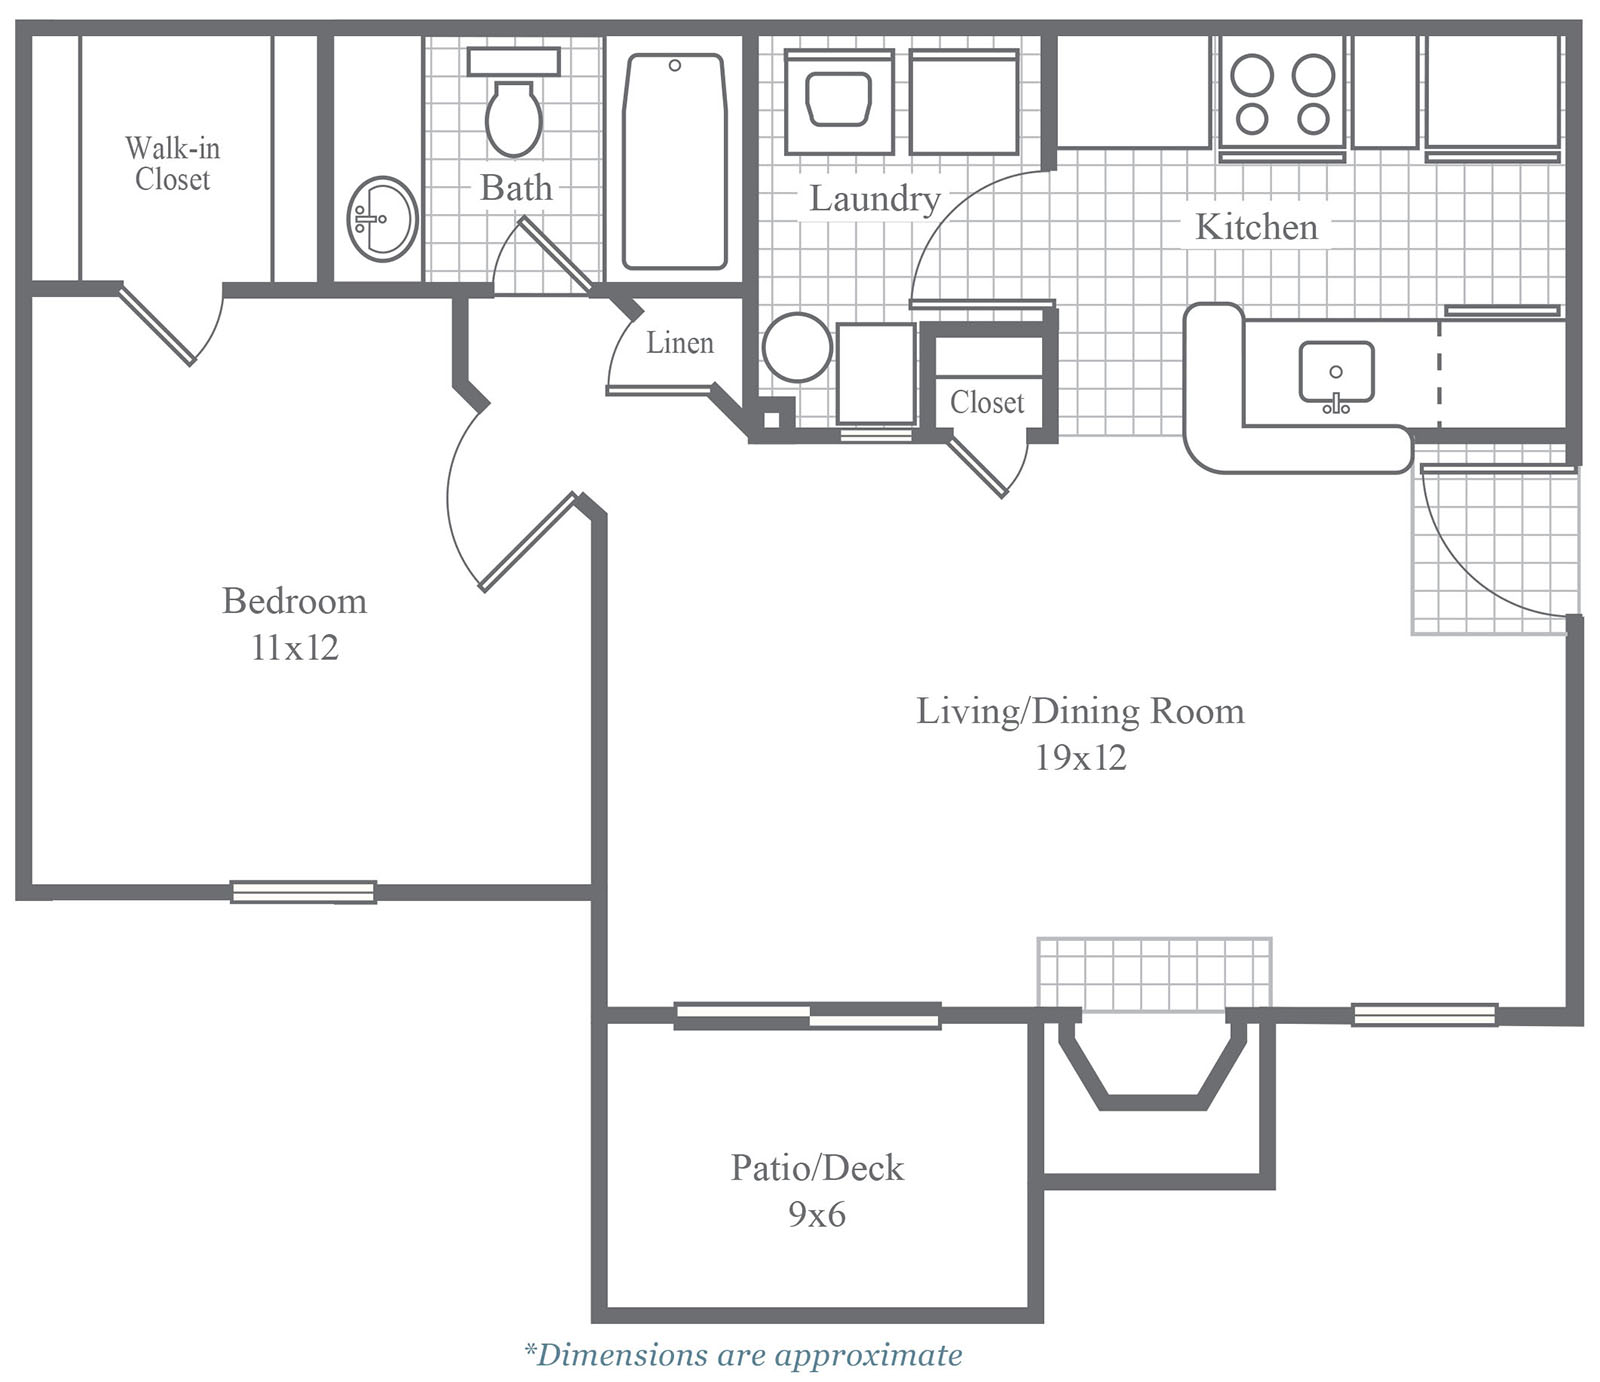 12x12 kitchen floor plans tag for 12x12 kitchen floor for 12x12 cabin floor plans